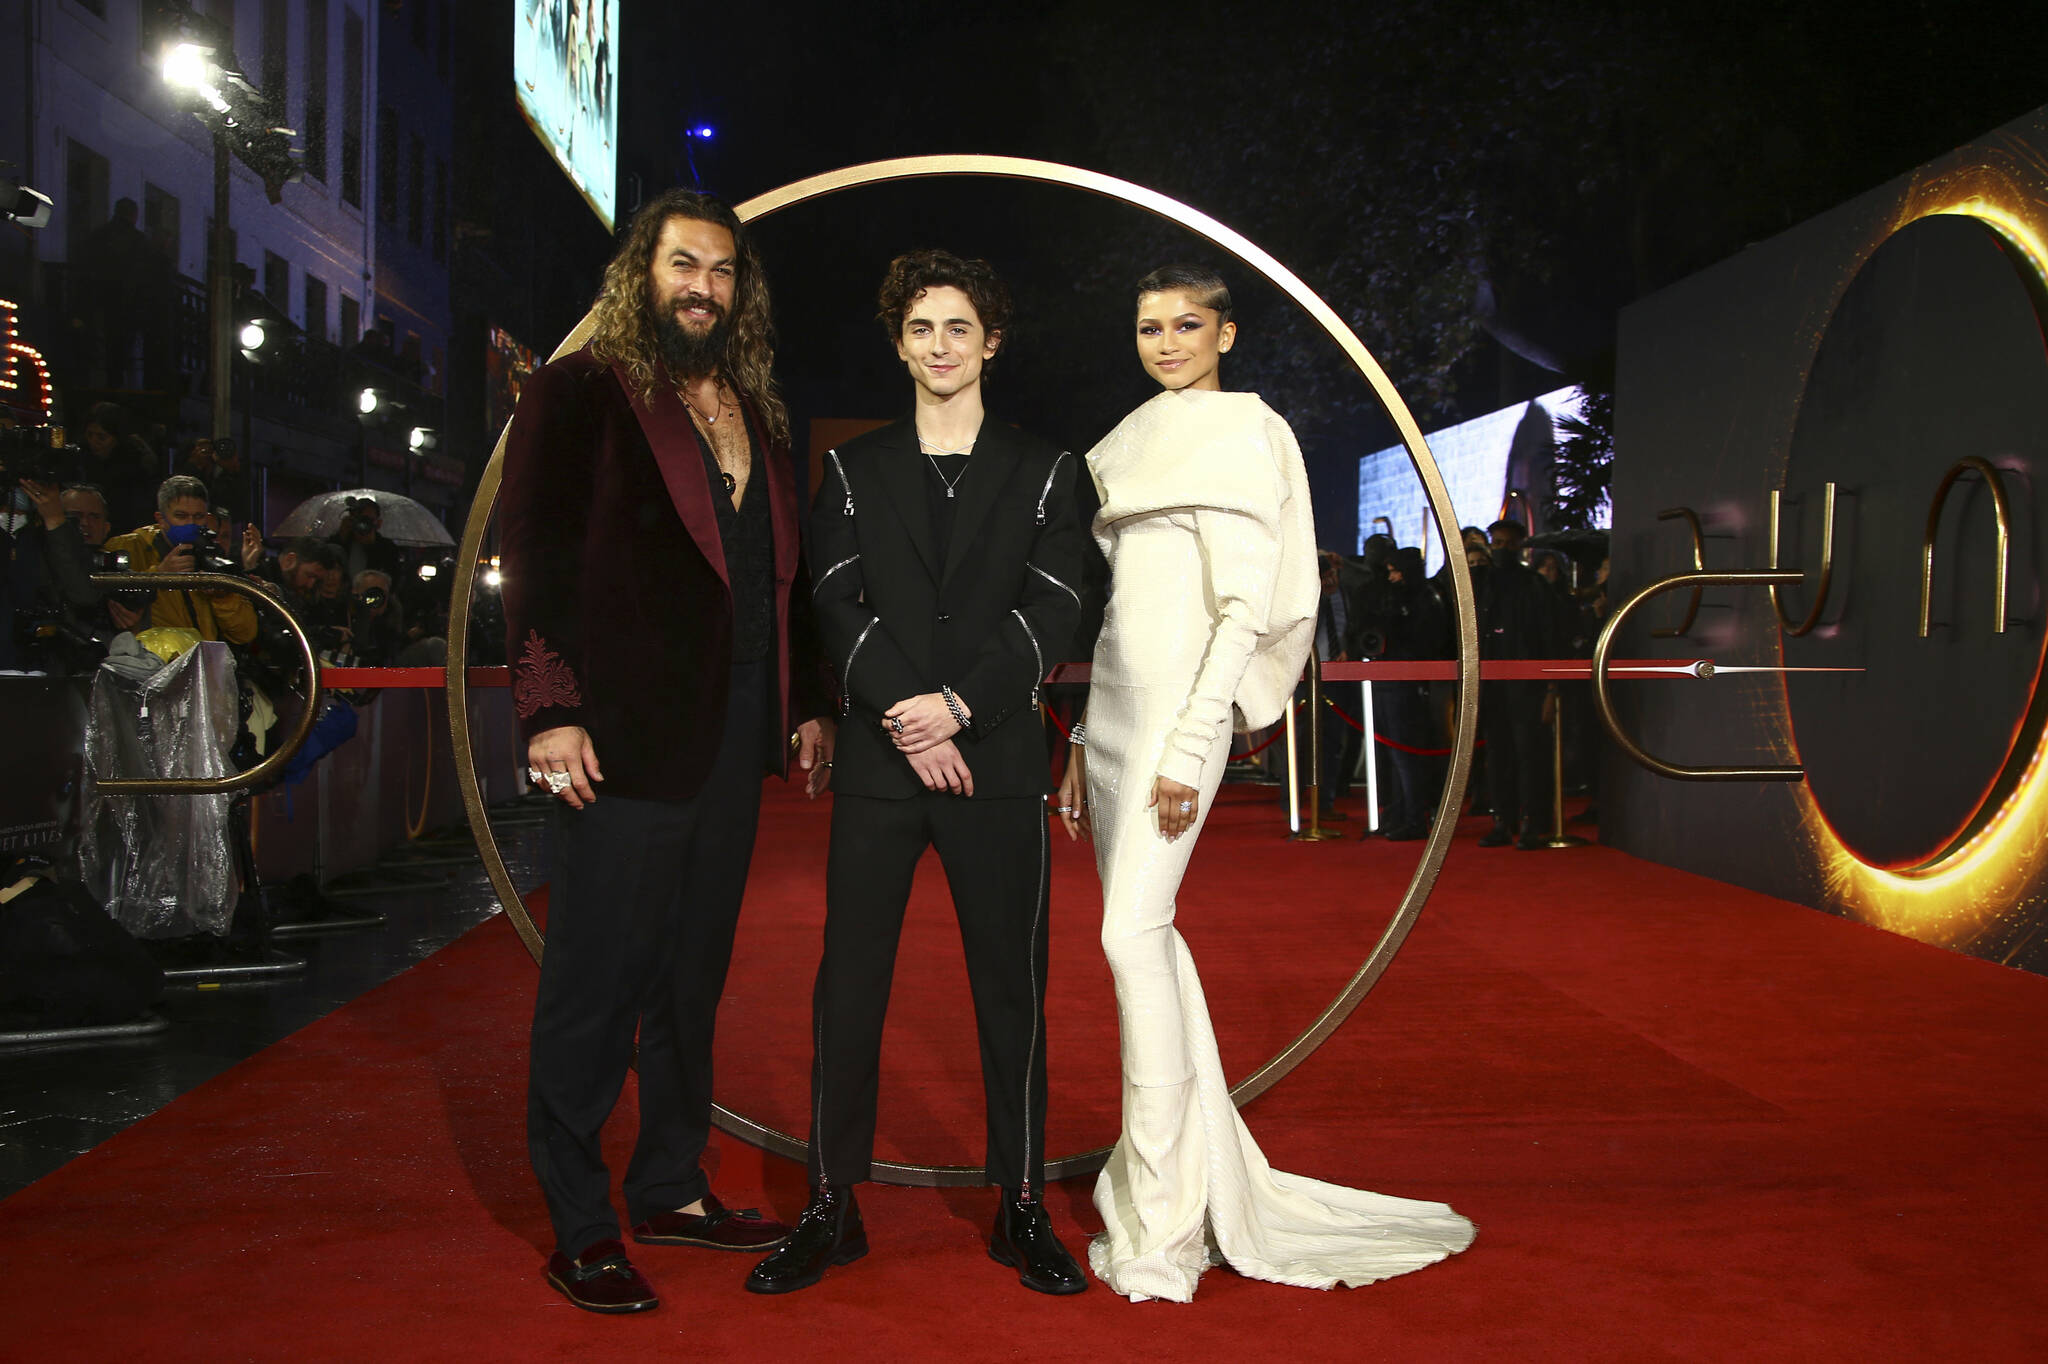 Jason Momoa, from left, Timothee Chalamet, and Zendaya pose for photographers upon arrival at the premiere of the film 'Dune' on Monday, Oct. 18, 2021 in London. (Photo by Joel C Ryan/Invision/AP)